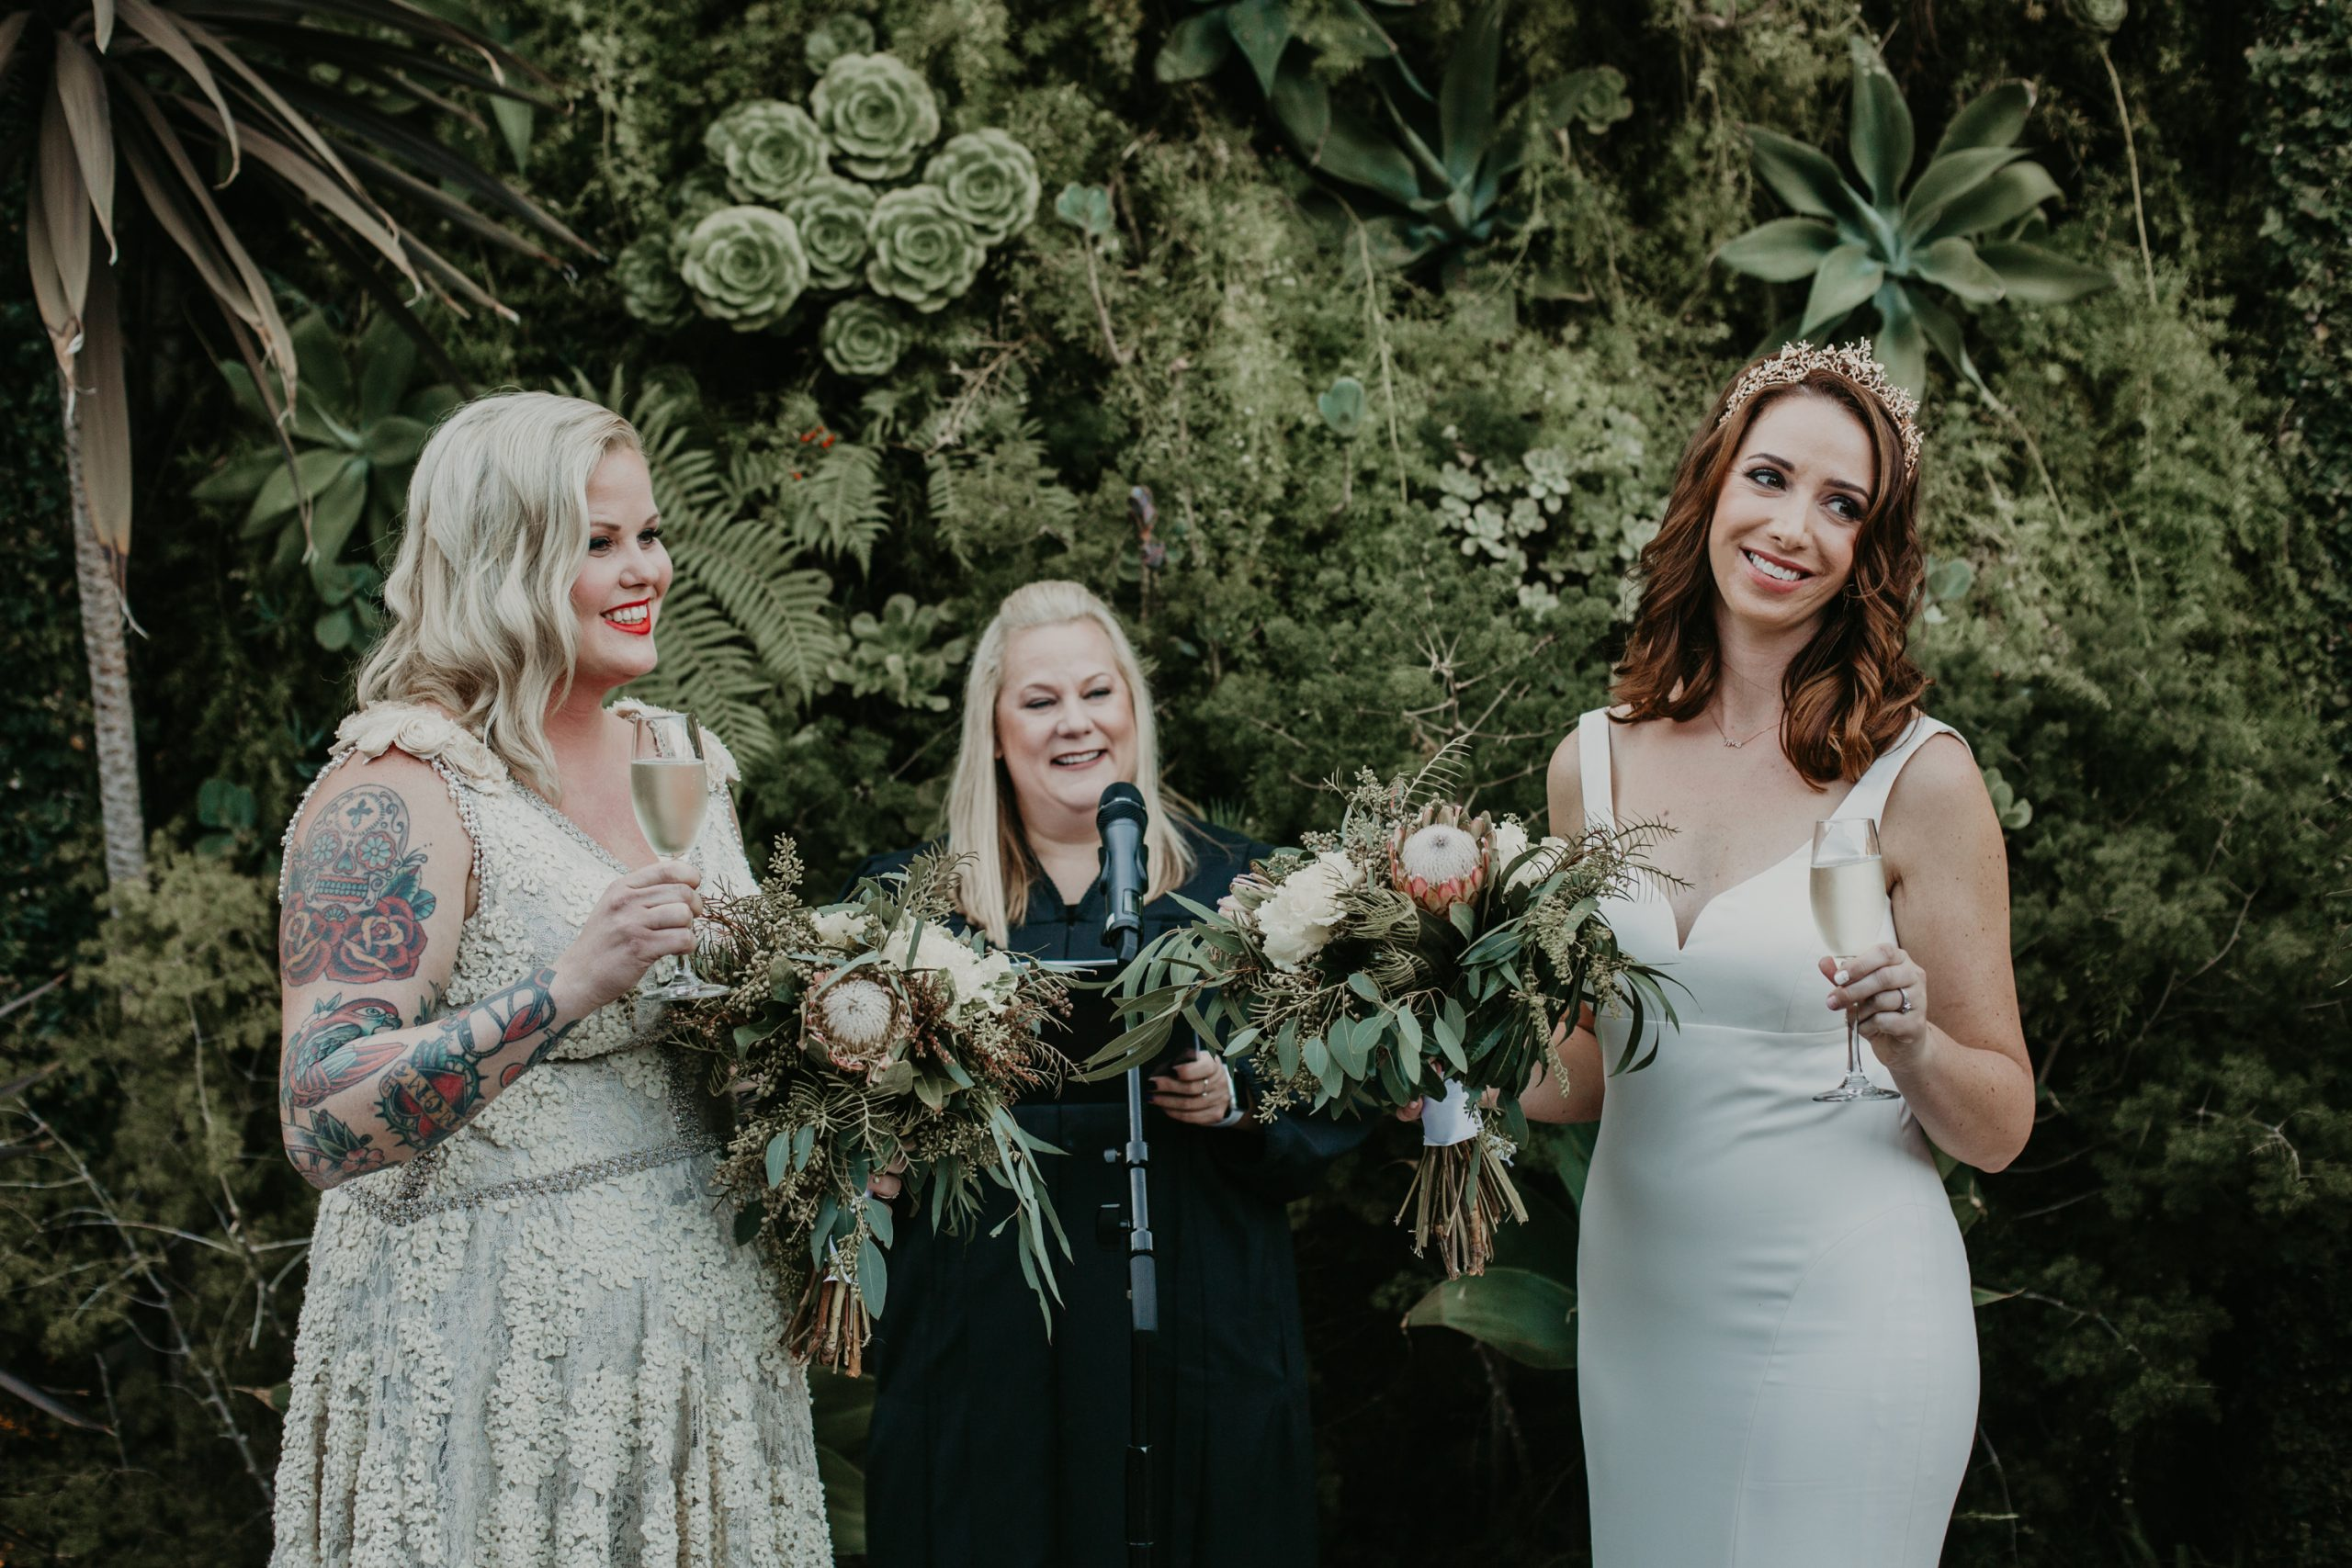 lgbt wedding ceremony toast at the Smogshoppe venue in Los Angeles